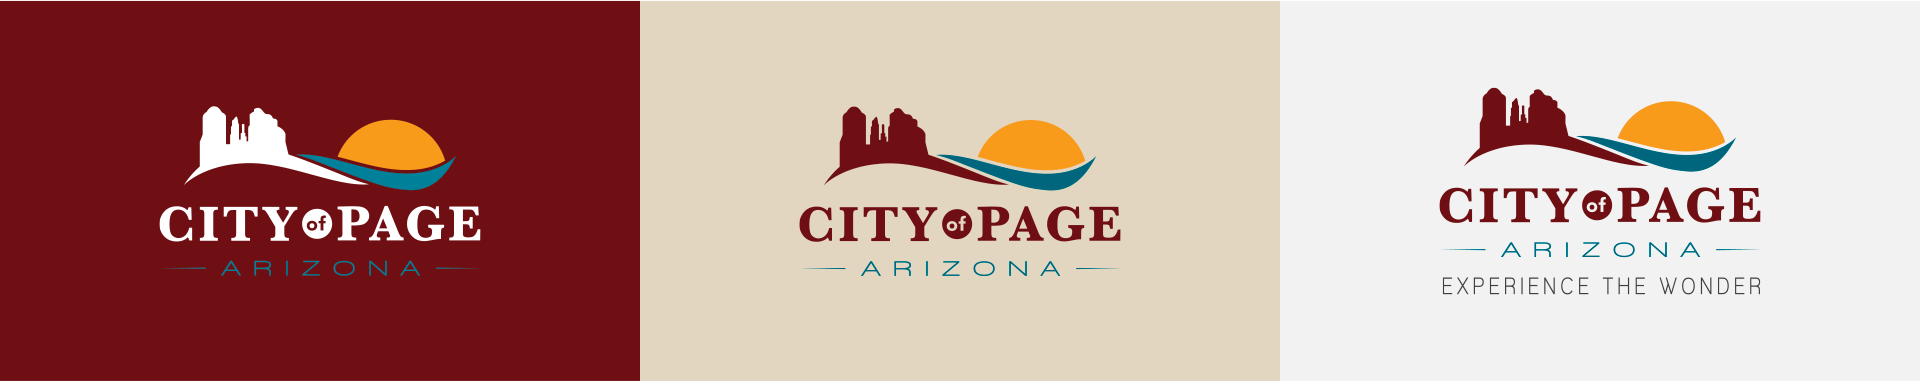 City of Page logo on different color backgrounds